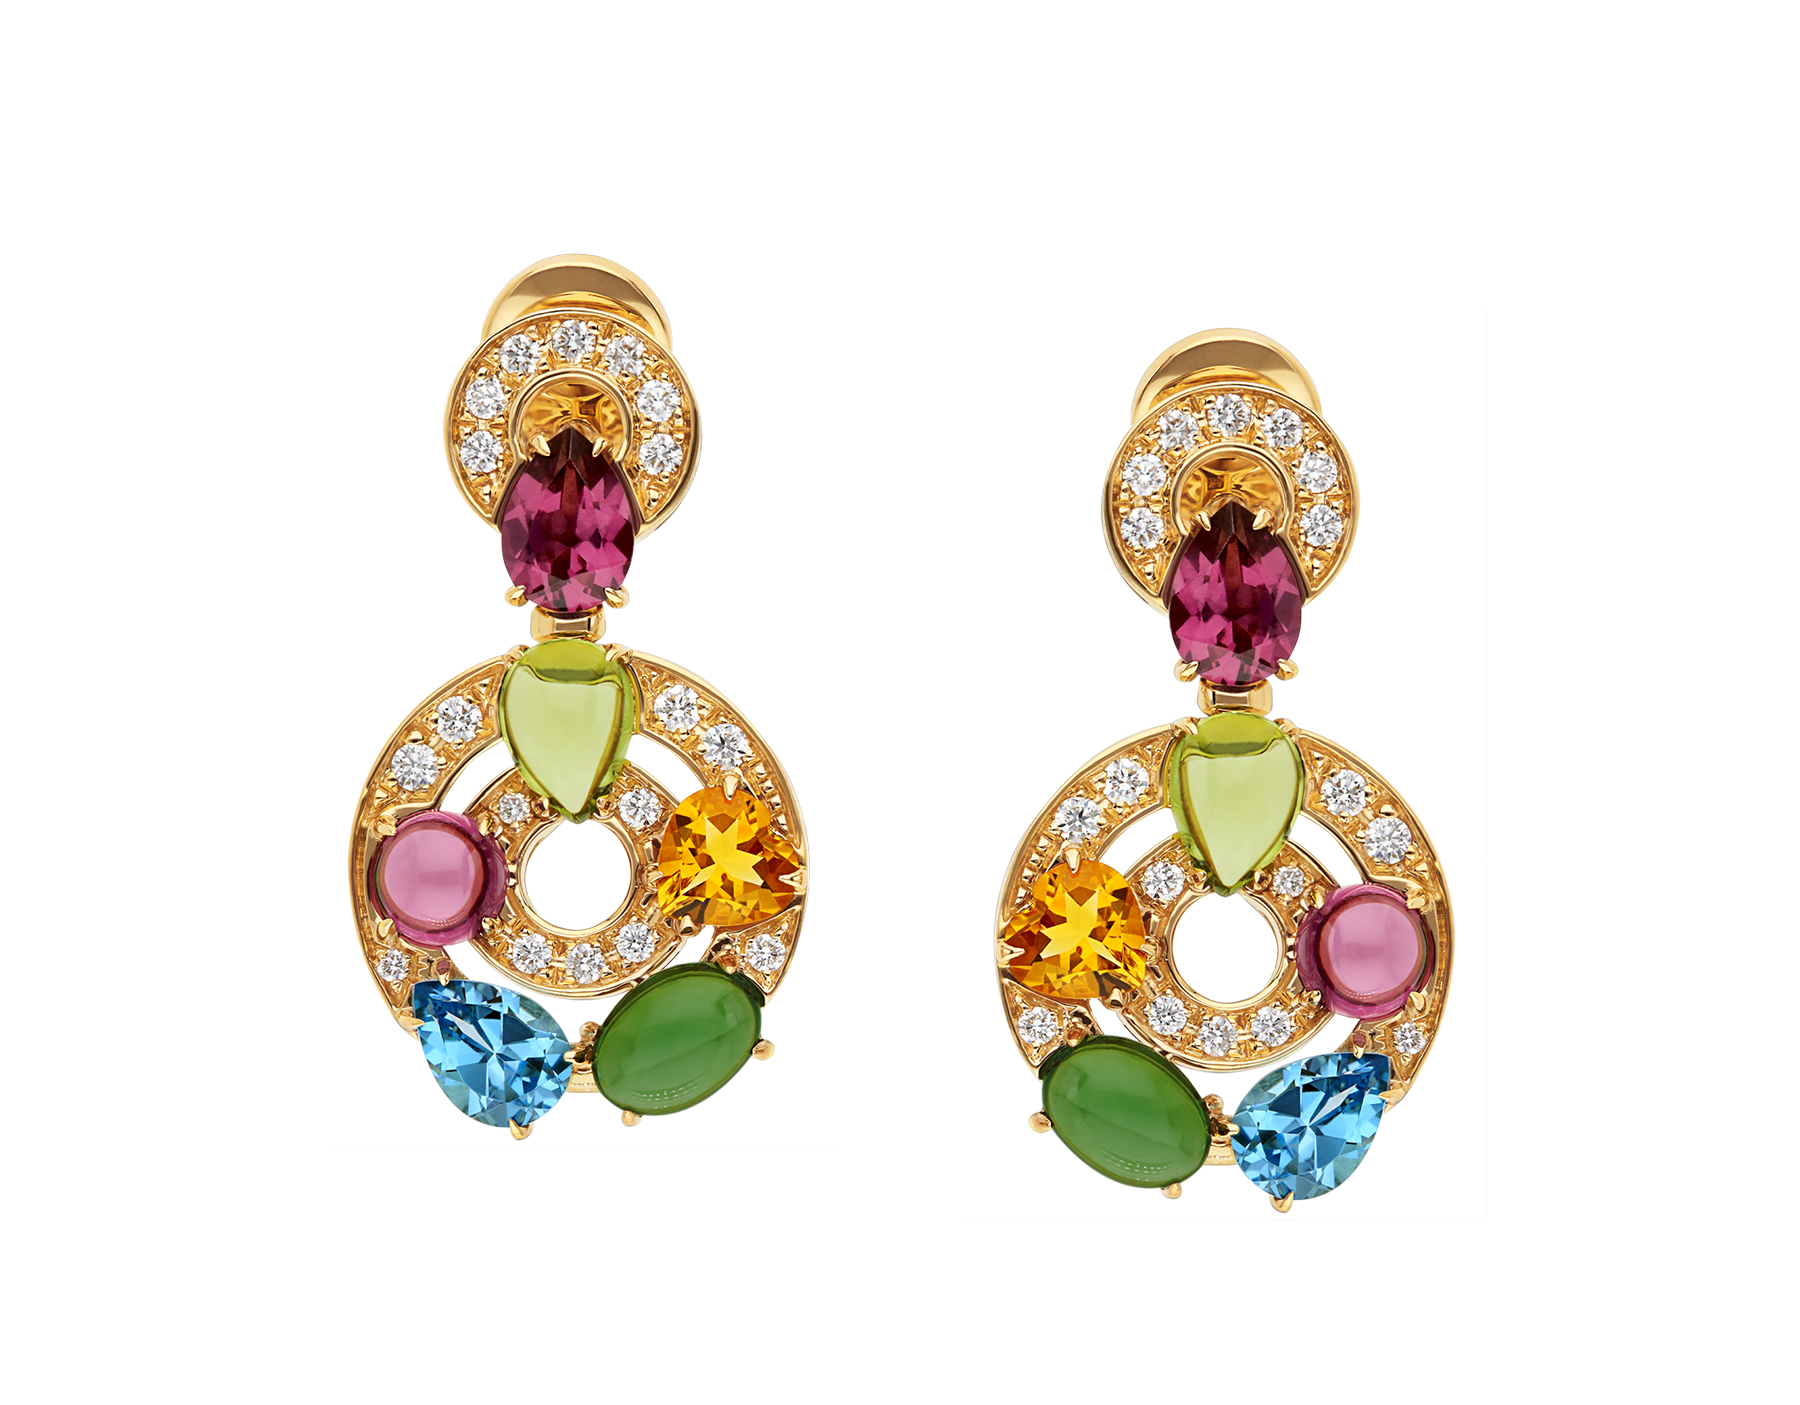 Astrale 18kt yellow gold earrings set with blue topazes, green tourmalines, peridots, citrine quartz, rhodolite garnets and pavé diamonds 339141 image 1